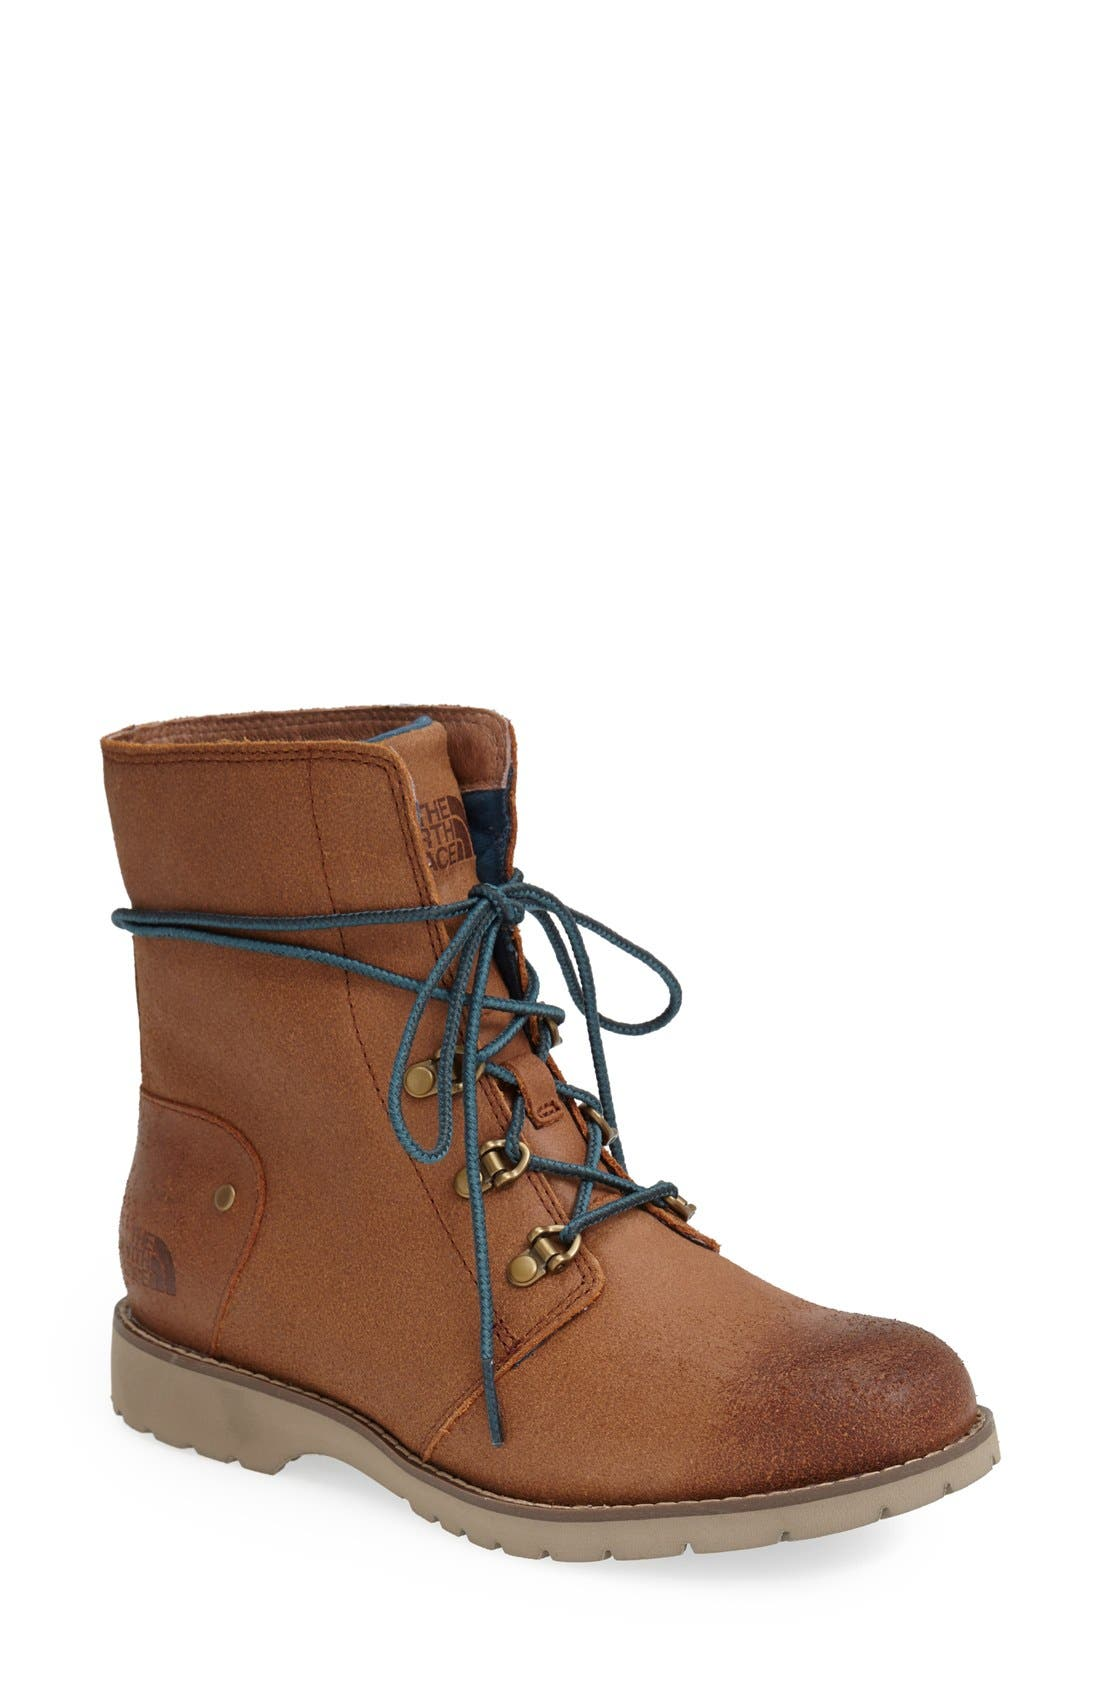 'Ballard' Boot,                         Main,                         color, 200